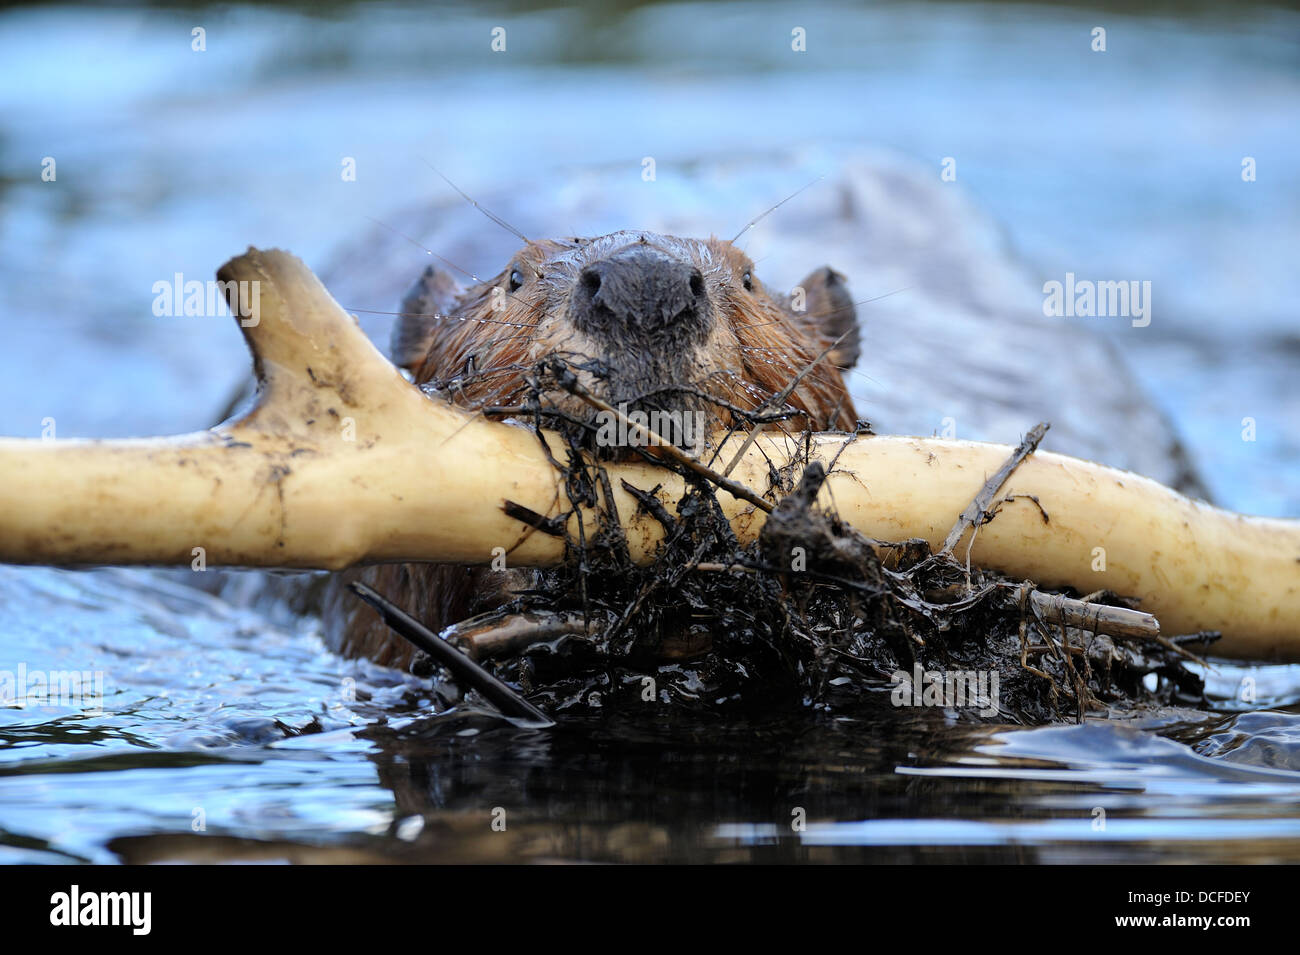 An adult beaver 'Castor canadenis' carrying a load of wet building materials to the dam - Stock Image